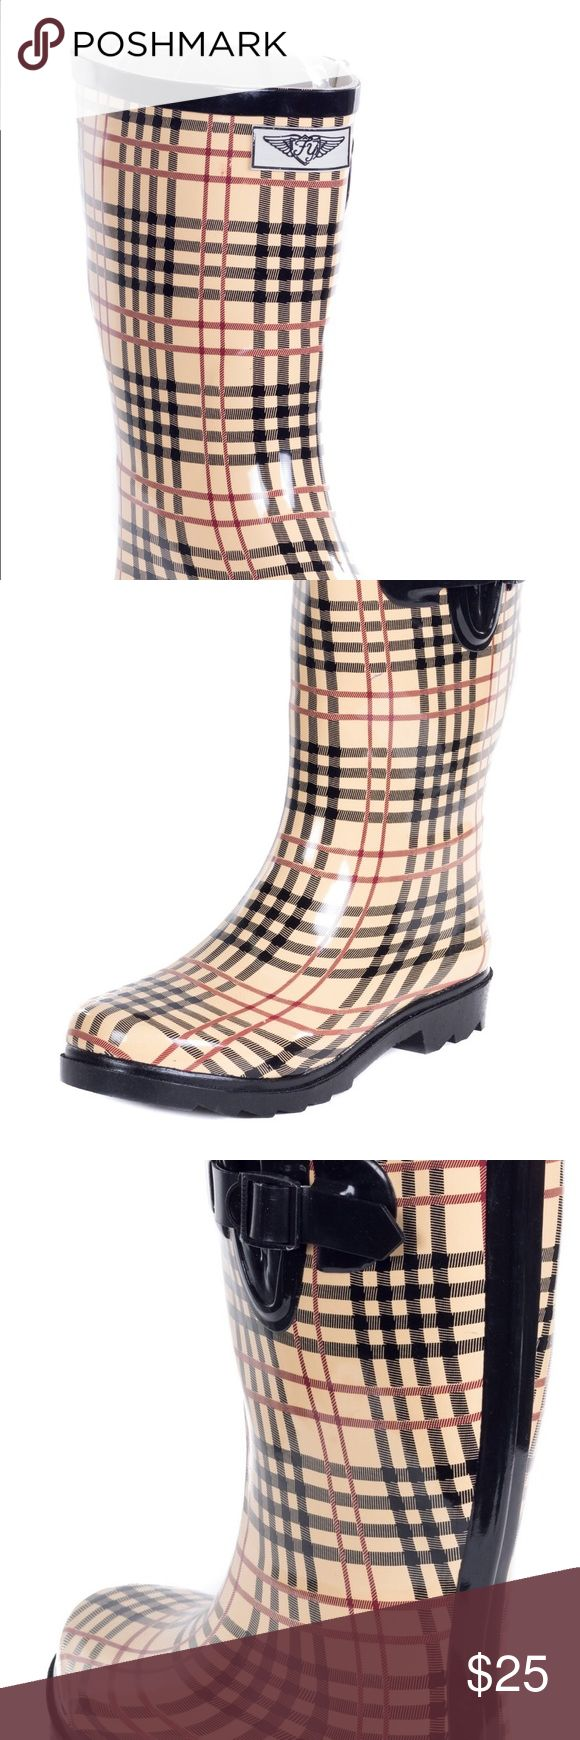 boot men the series boots blundstone quite classic pin most womens comfortable durable comforter possibly